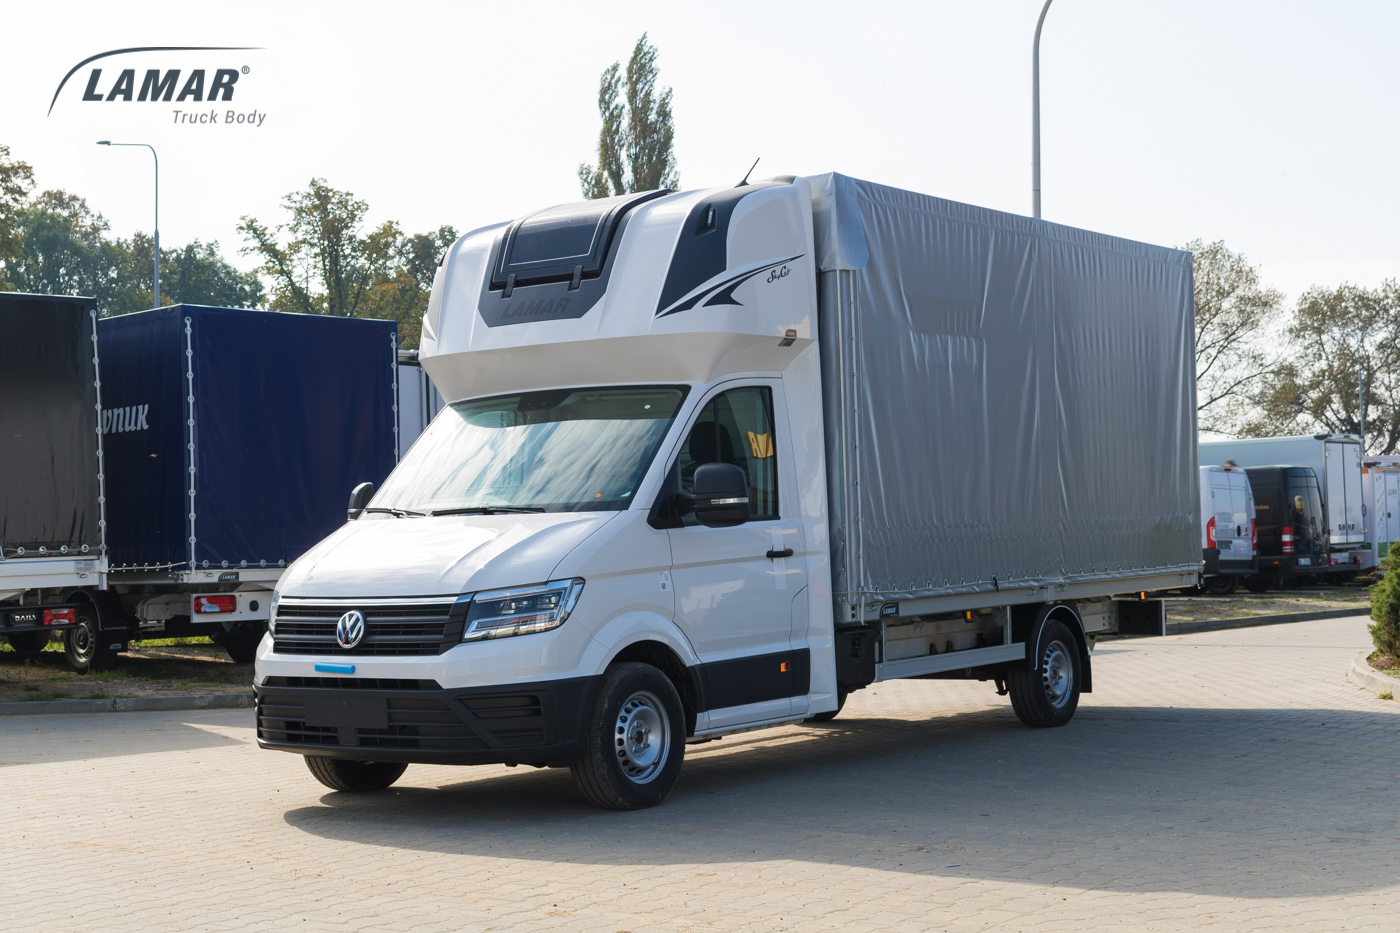 vw crafter 2017 skrzynia z plandek i kabin sypialn skycab. Black Bedroom Furniture Sets. Home Design Ideas